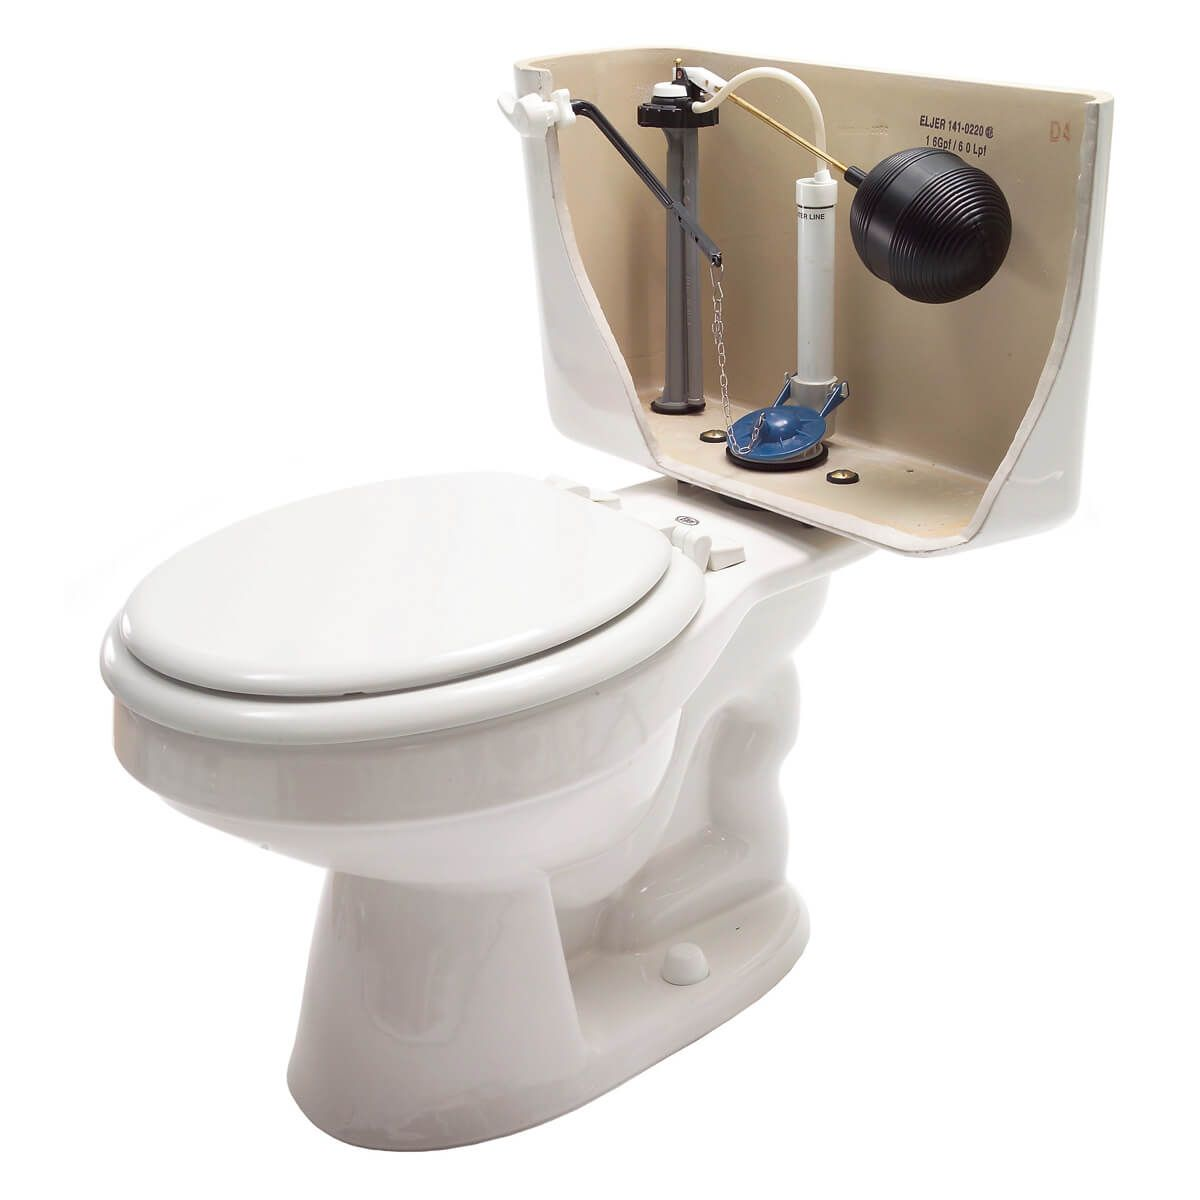 21 Things Not to Say While DIYing | Toilet and 21 things